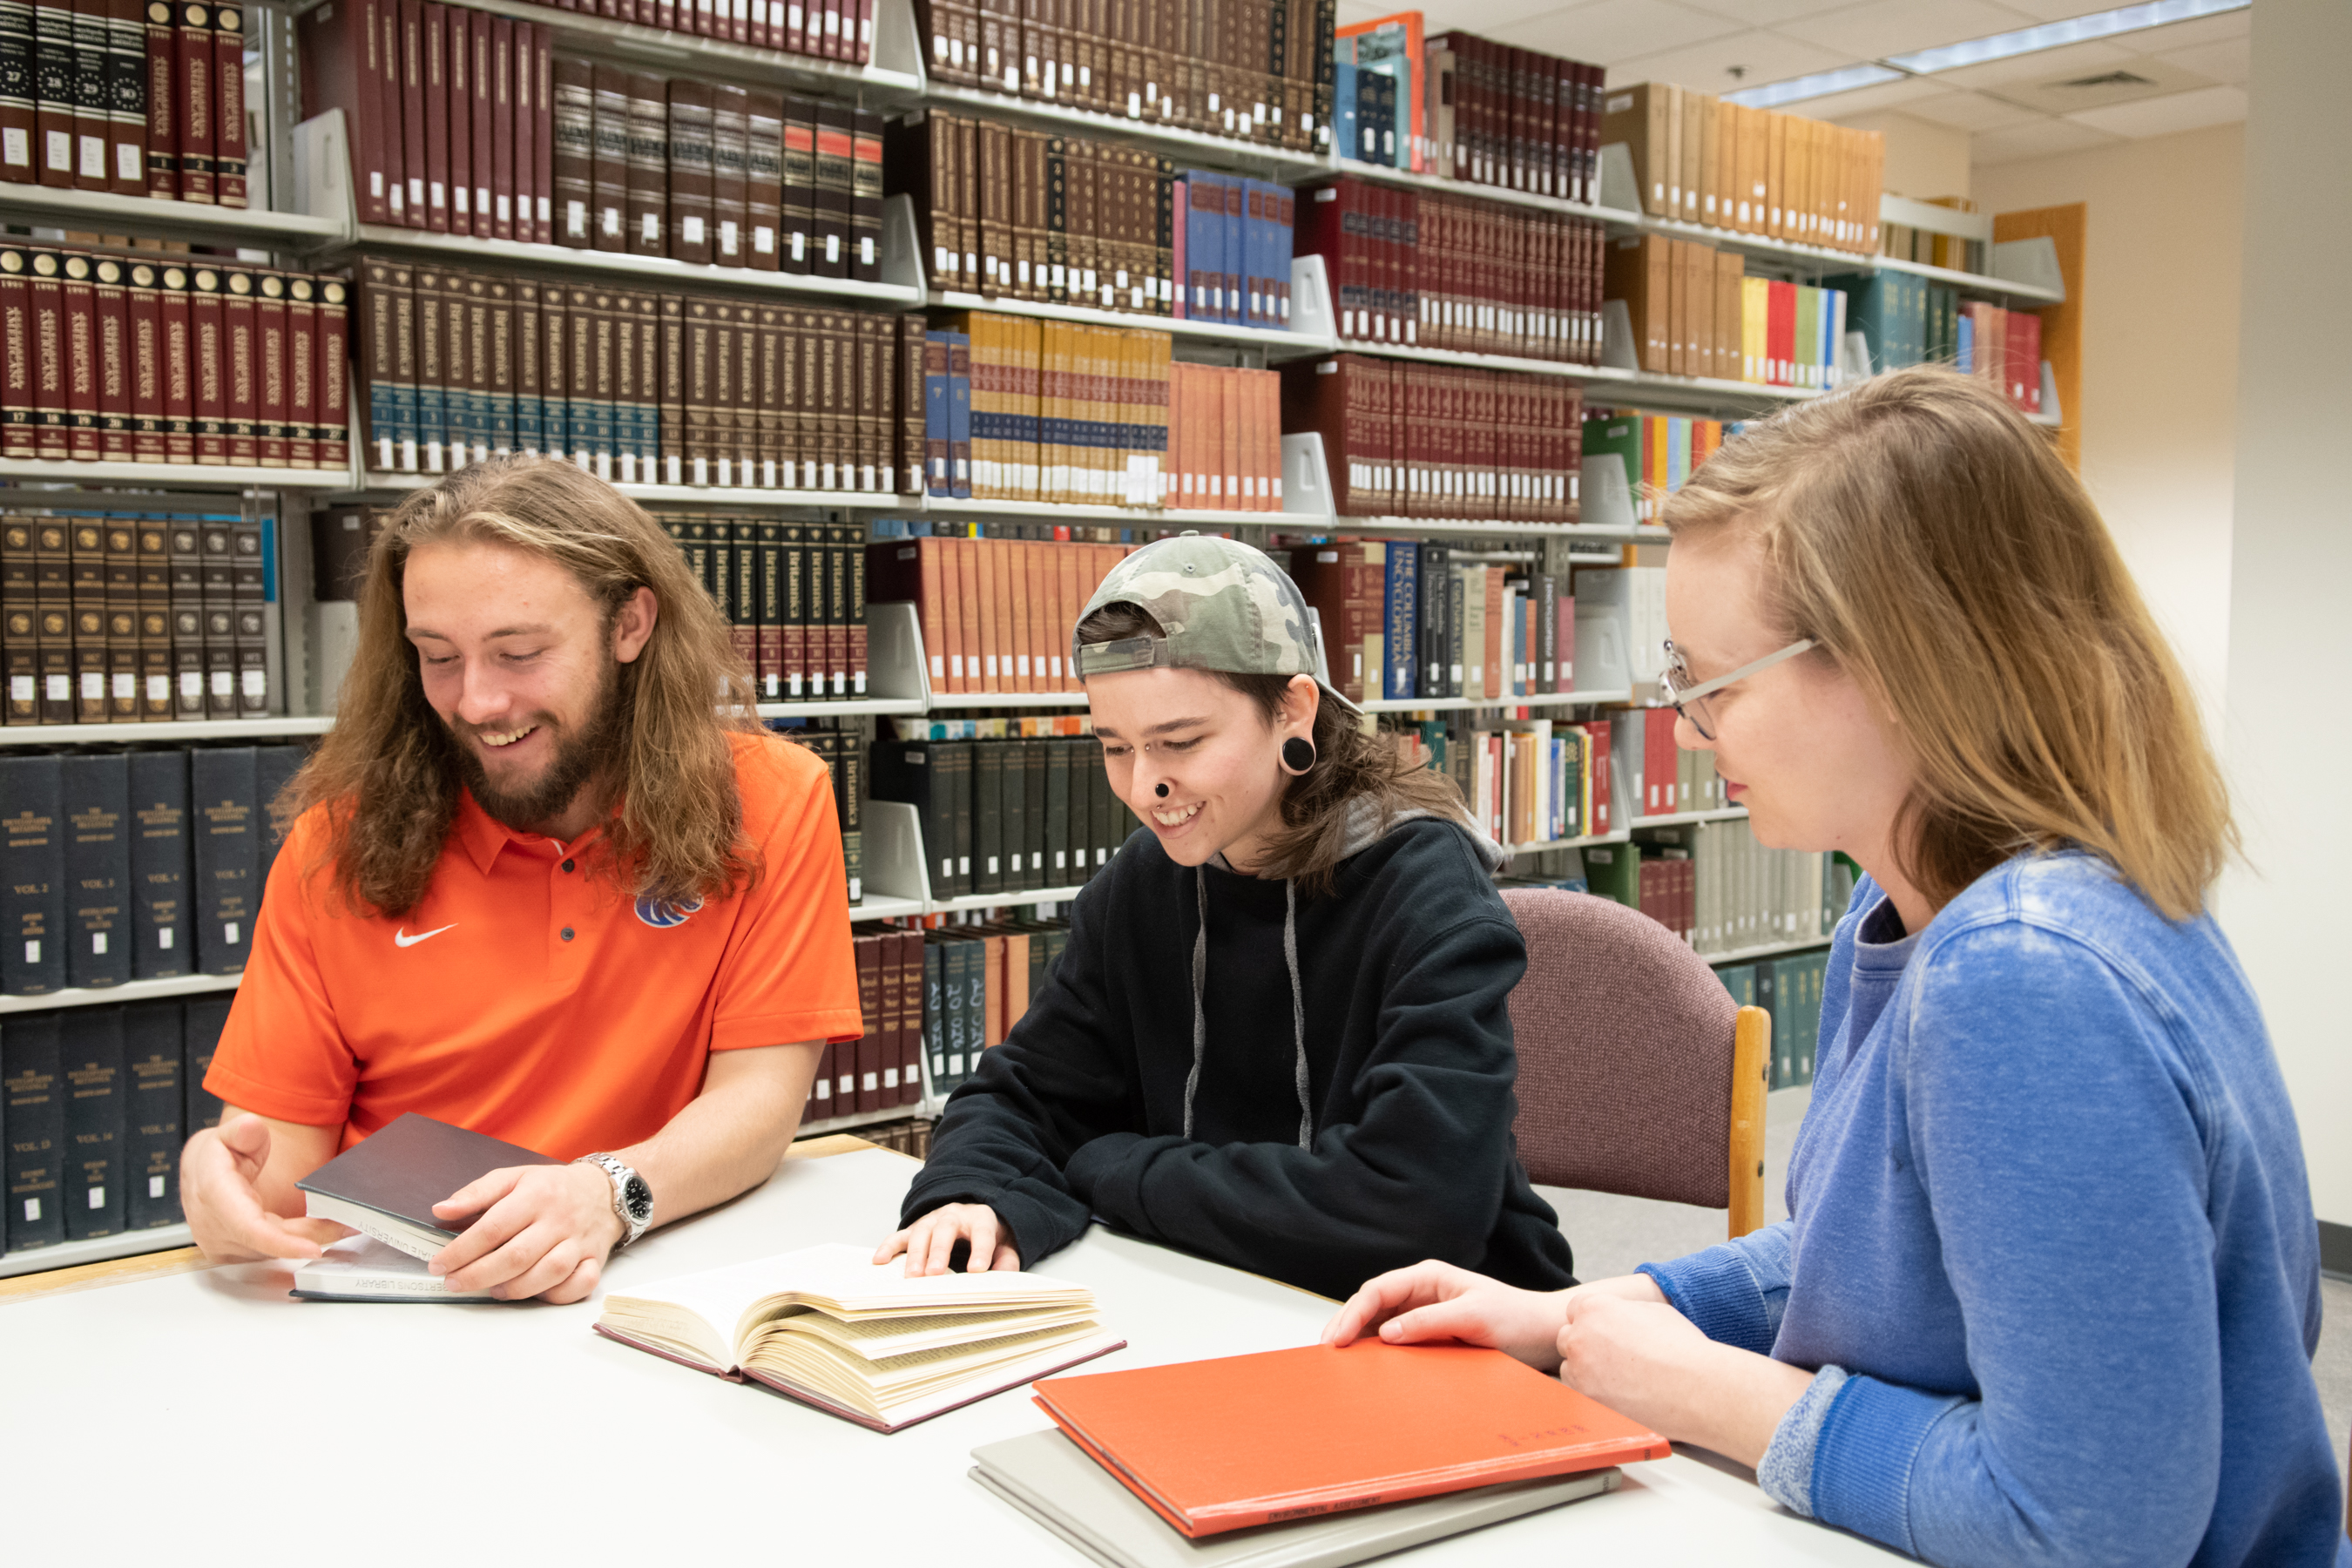 Three students studying together in the library